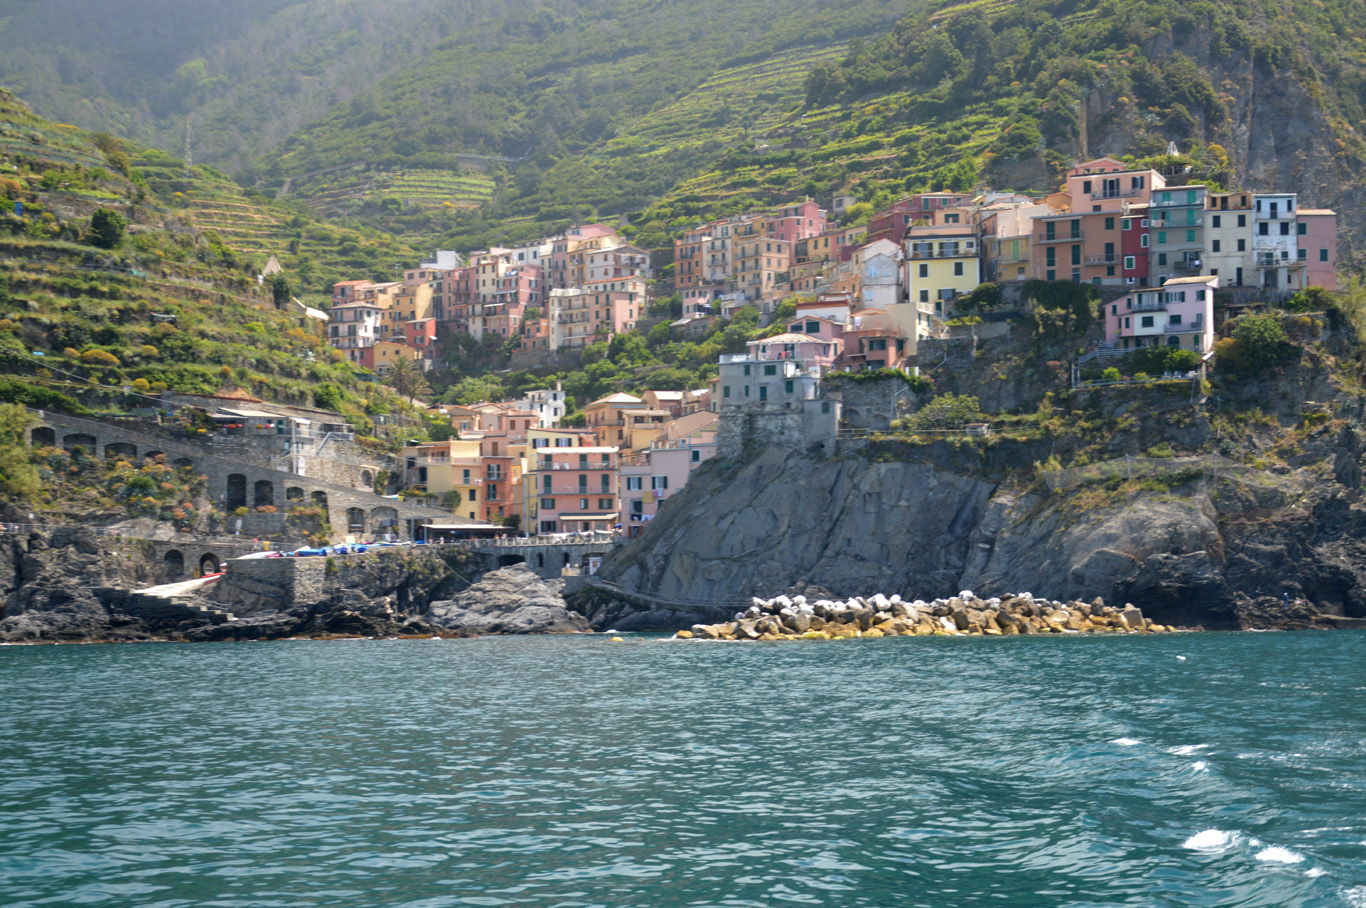 The second village of Manarola seen from the boat (number 3 on the map)